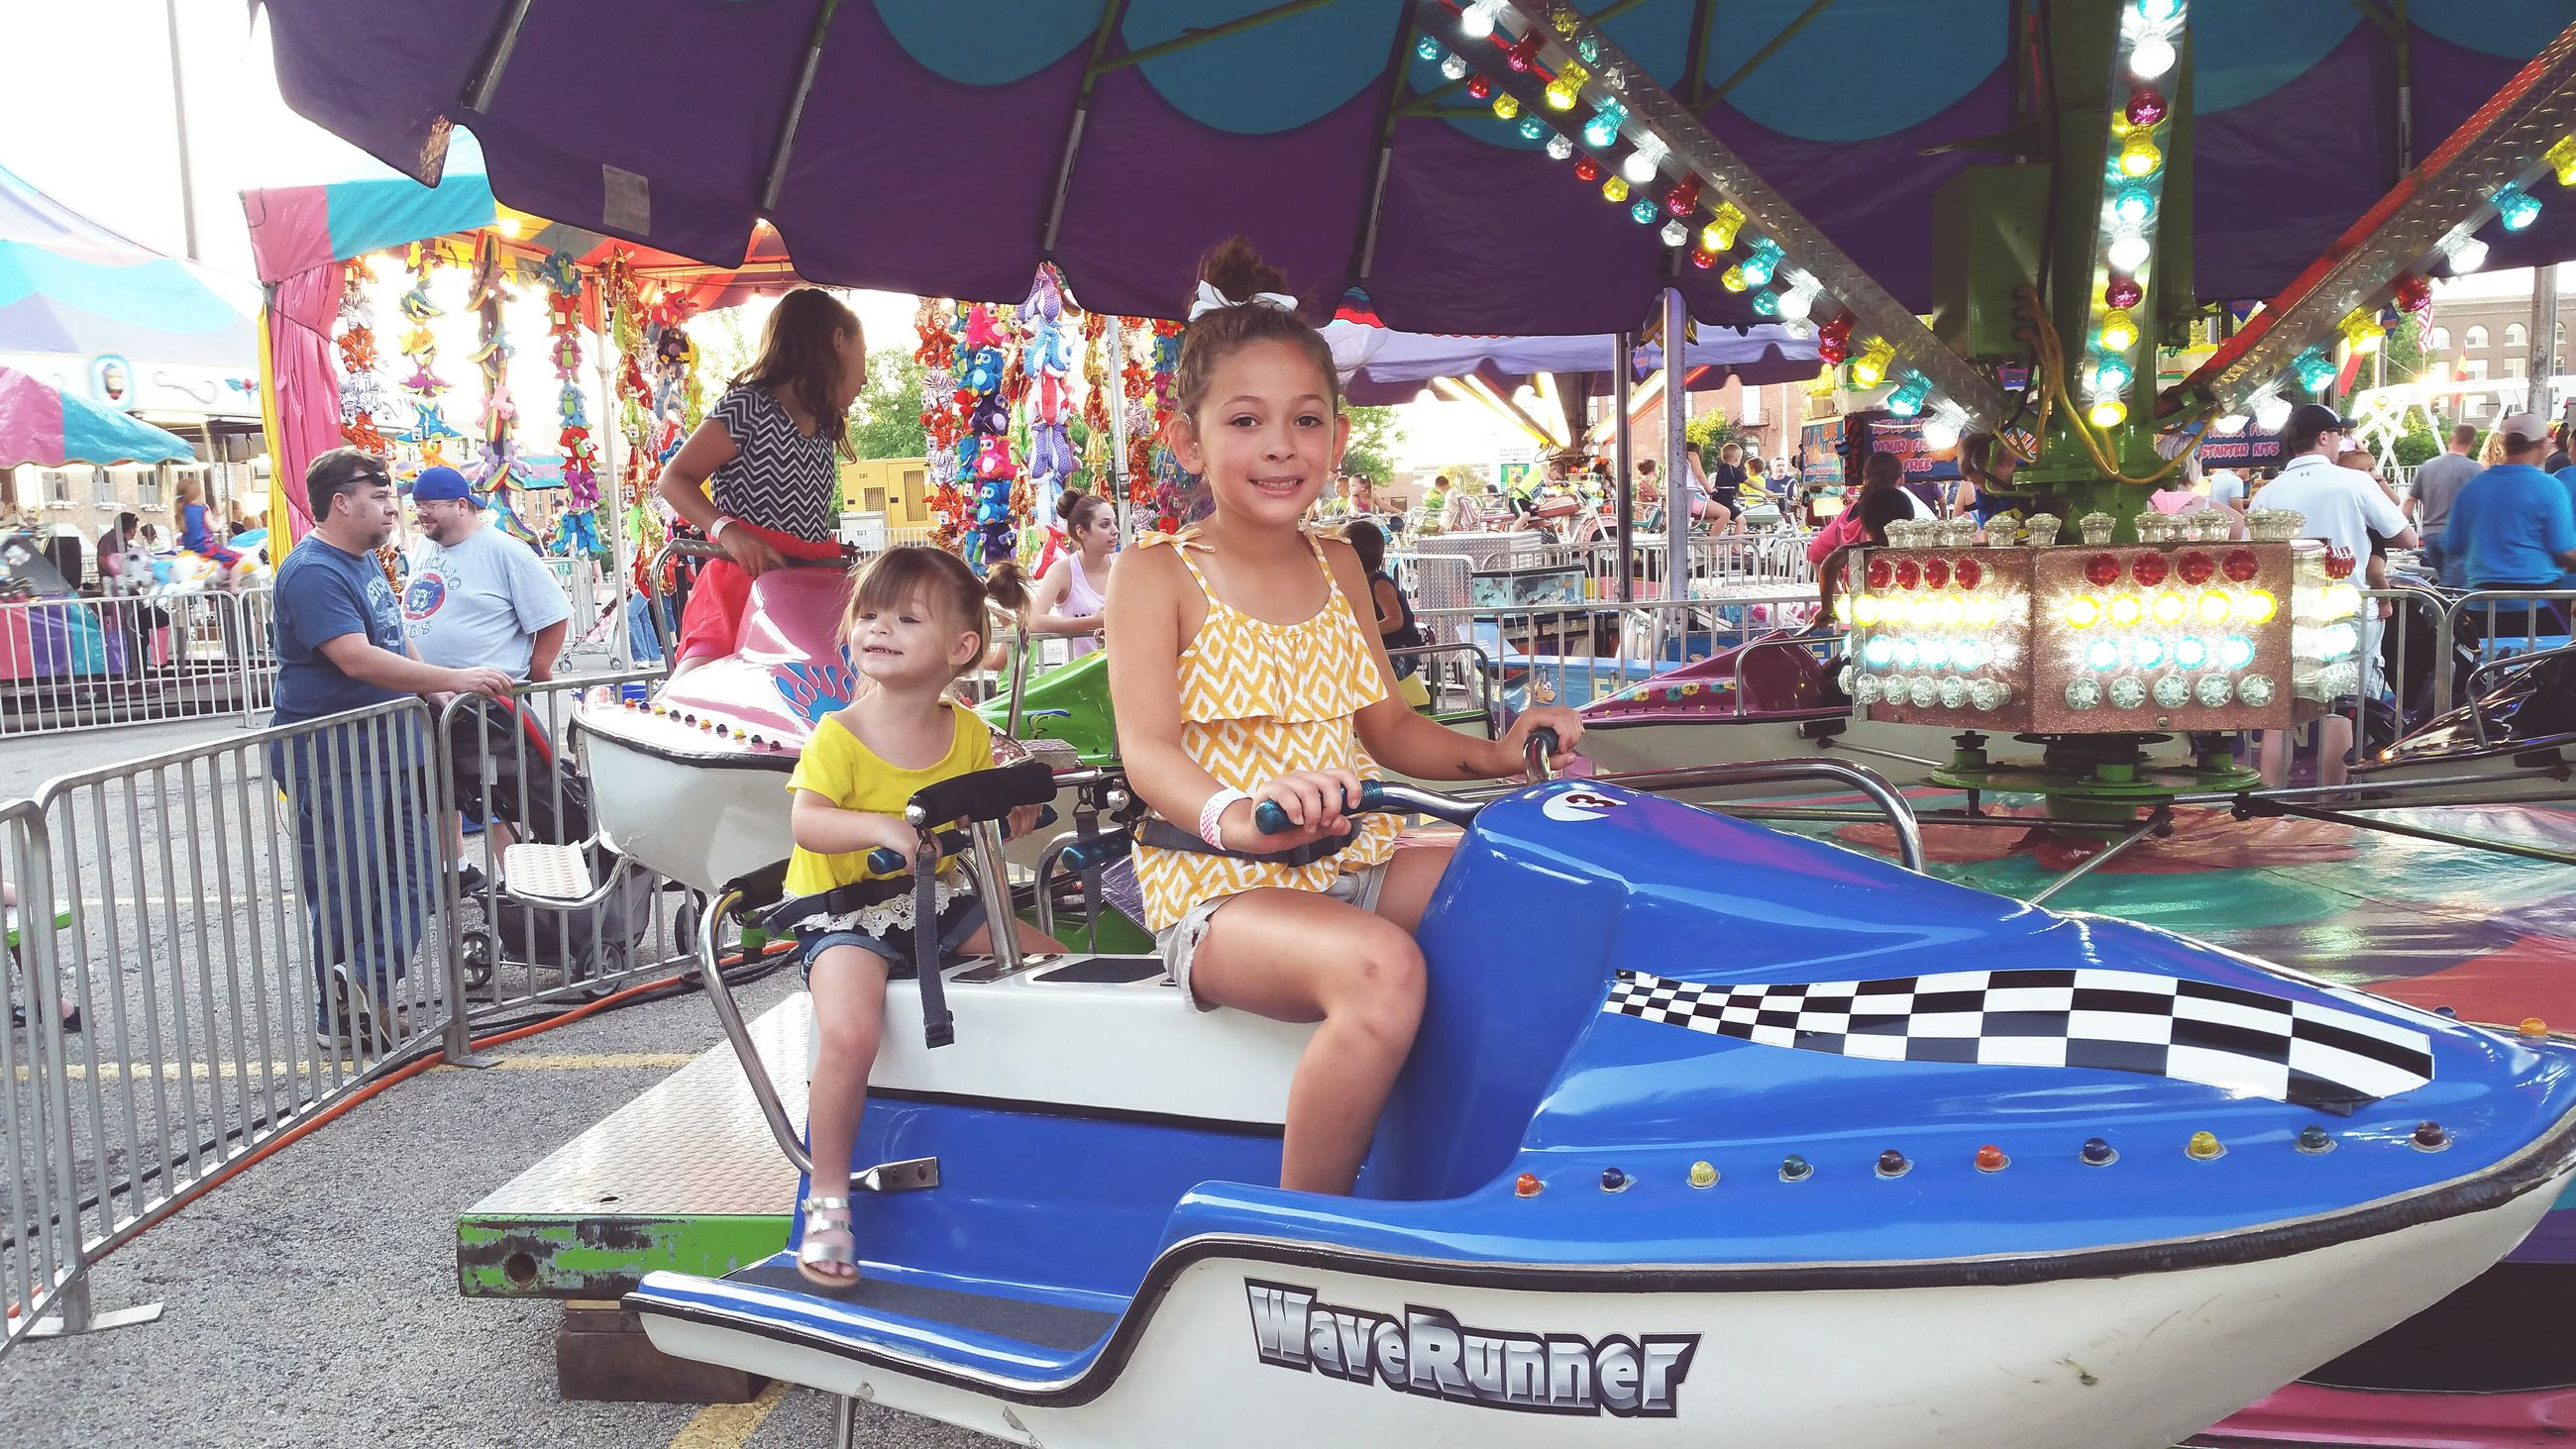 leisure activity, childhood, arts culture and entertainment, lifestyles, animal representation, amusement park, sitting, fun, retail, carousel, multi colored, tradition, incidental people, amusement park ride, casual clothing, enjoyment, cultures, art and craft